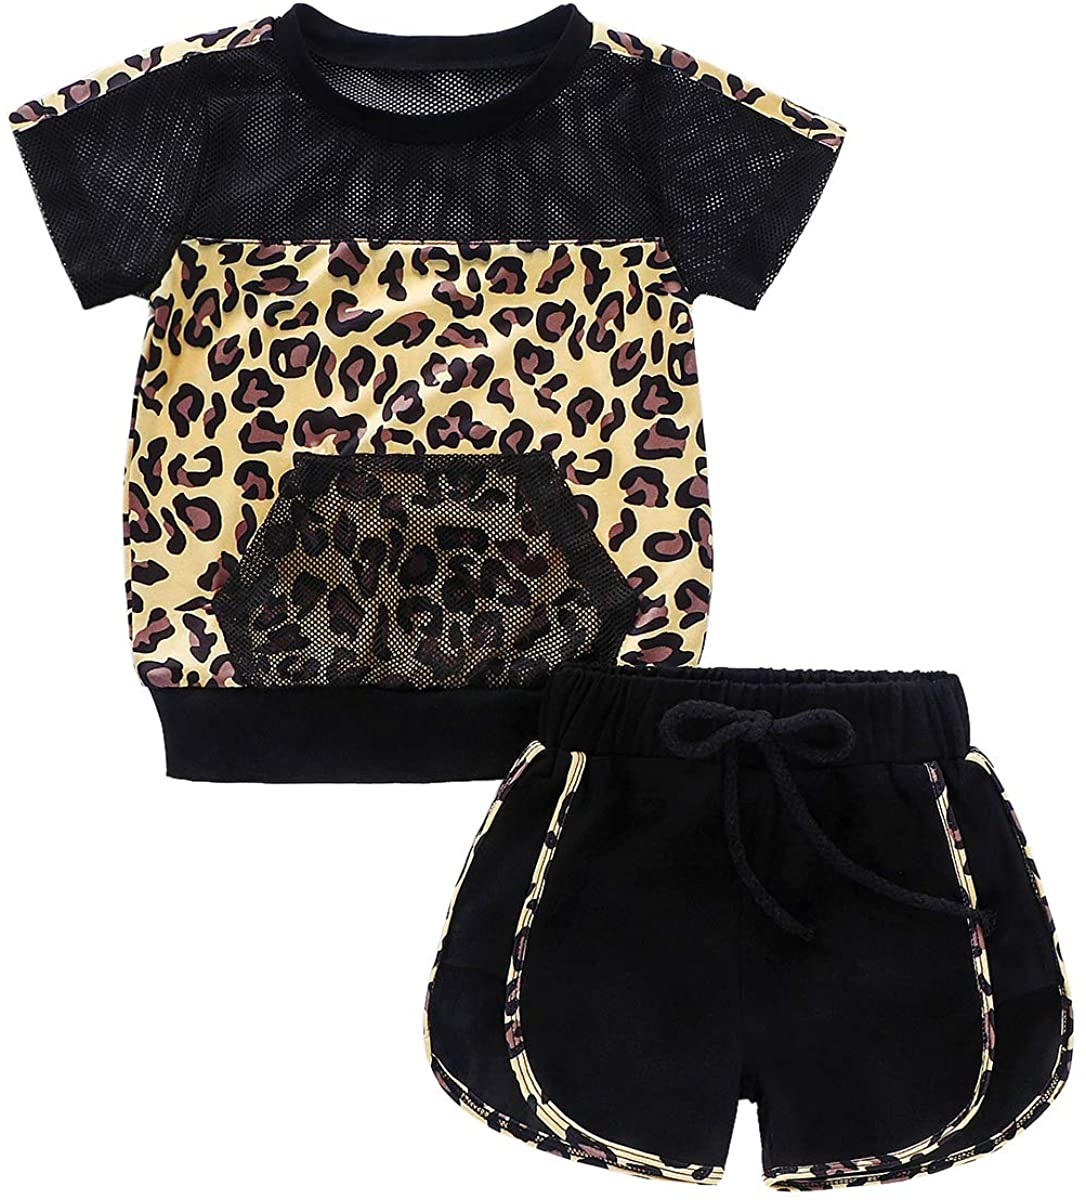 Toddler Baby Girls Summer Outfits Leopard Short Sleeve Pocket Breathable T-Shirt Tops Shorts Clothes Sports Sets